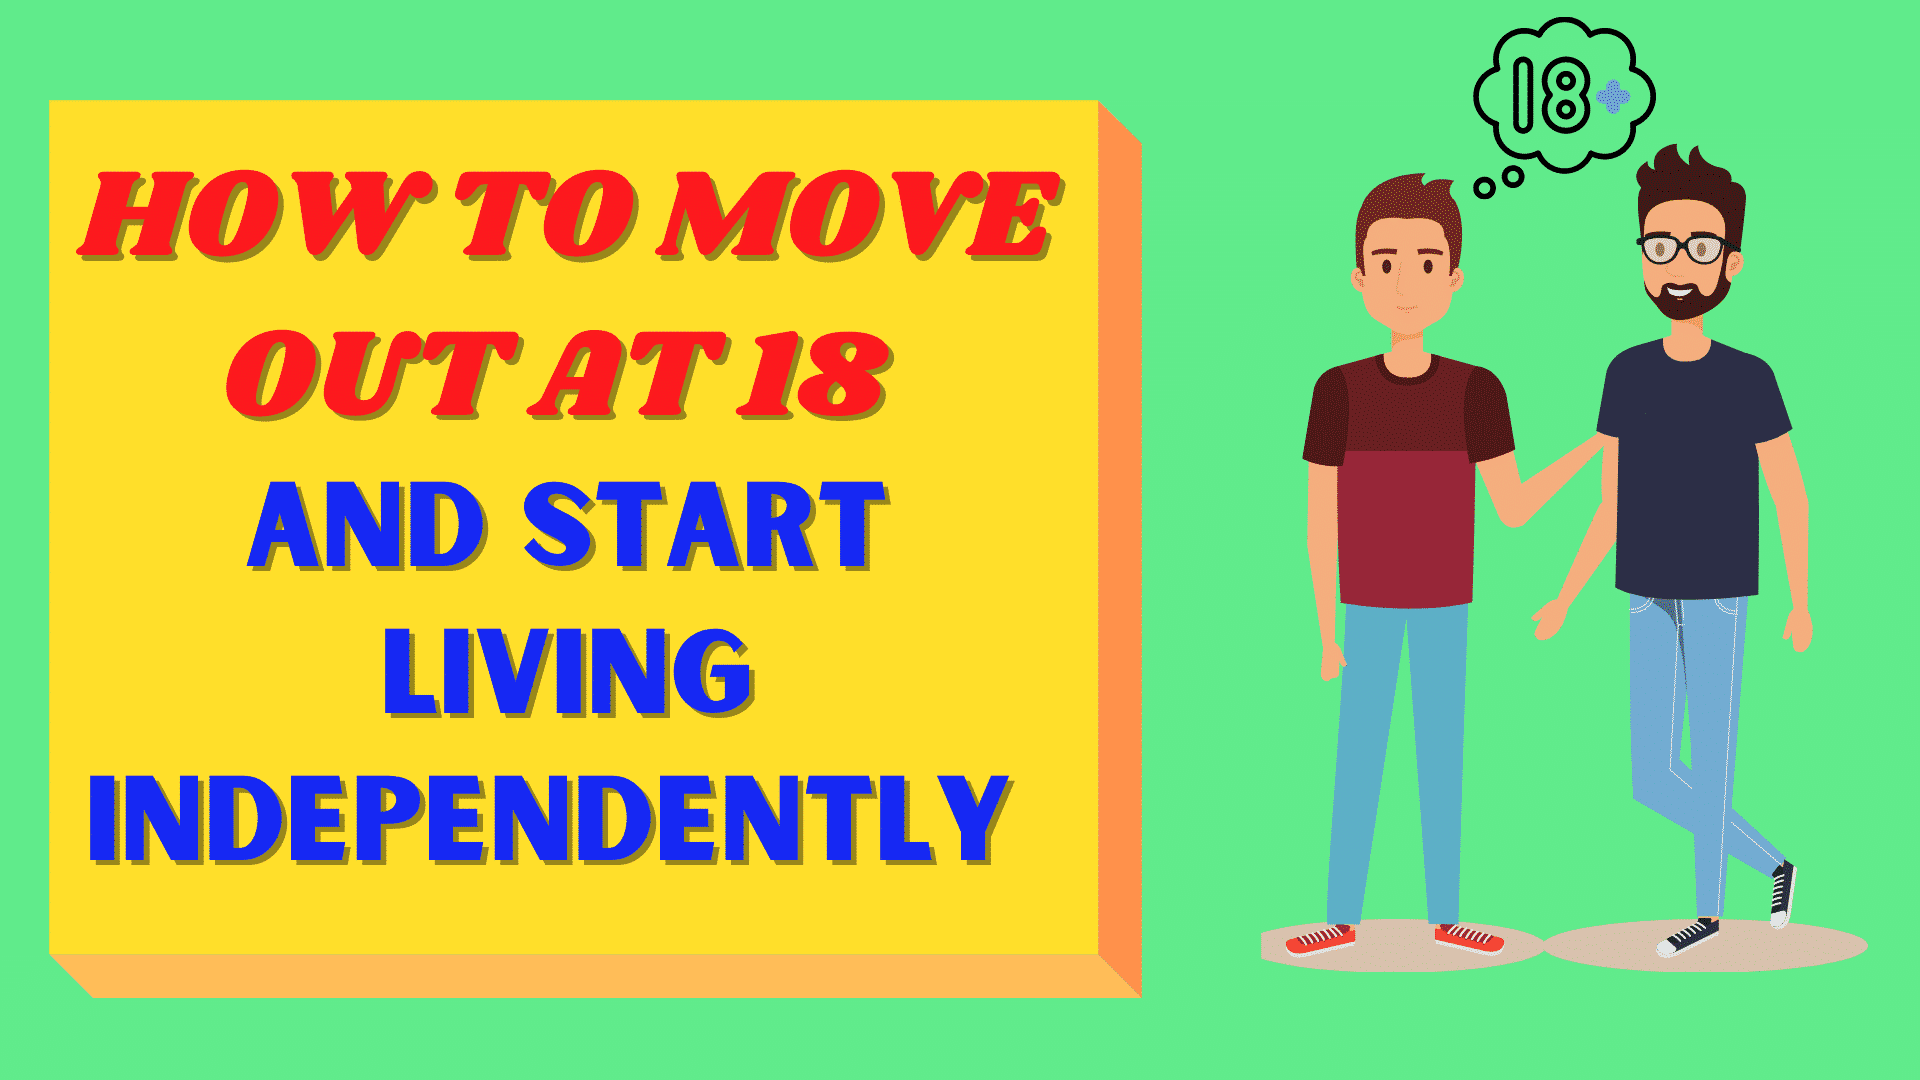 Best Tips on How to Move Out at 18 and Start Living Independently